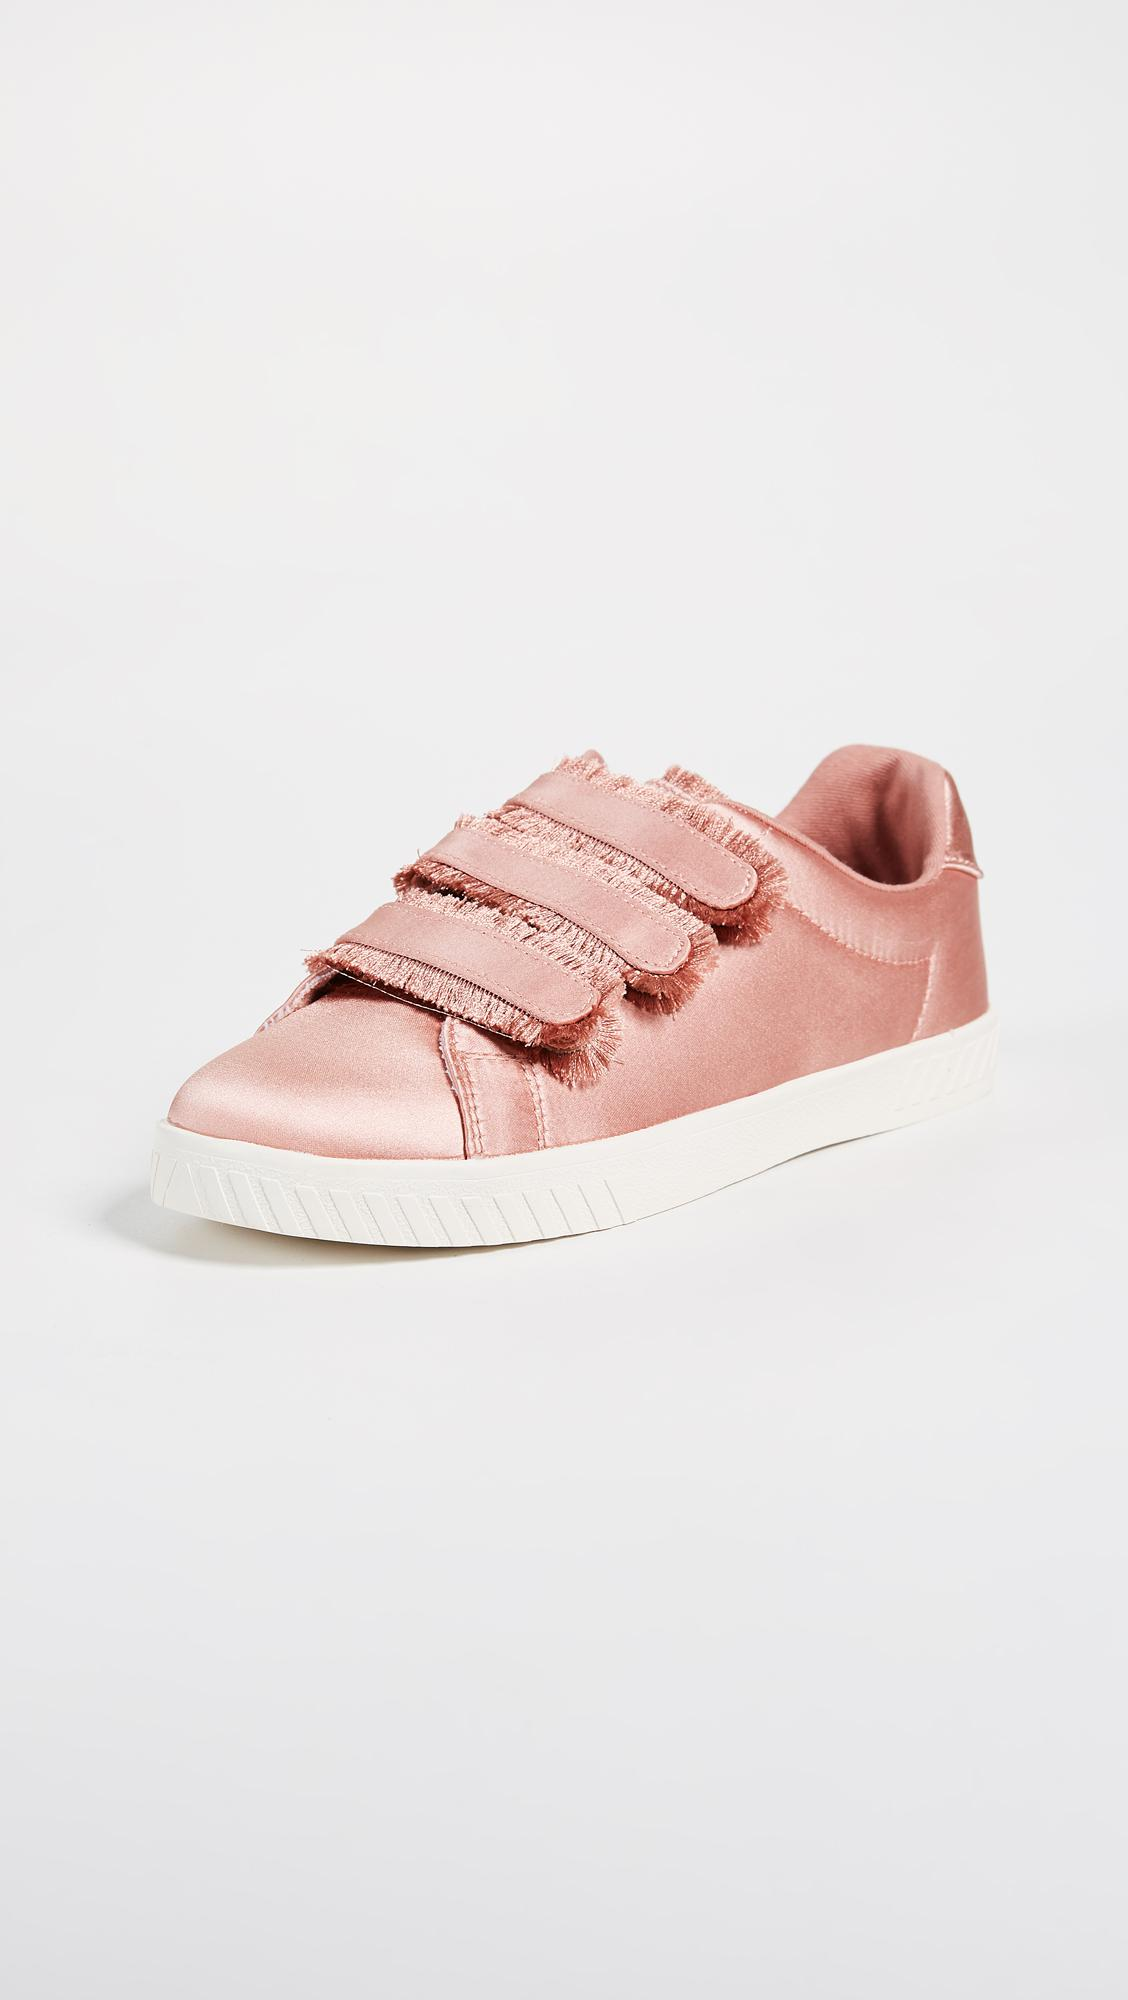 Clearance For Cheap Cheap Sale Exclusive Tretorn Carry Fringe Satin Sneaker(Women's) -Crudo Denim Outlet Order 2NLEcpi